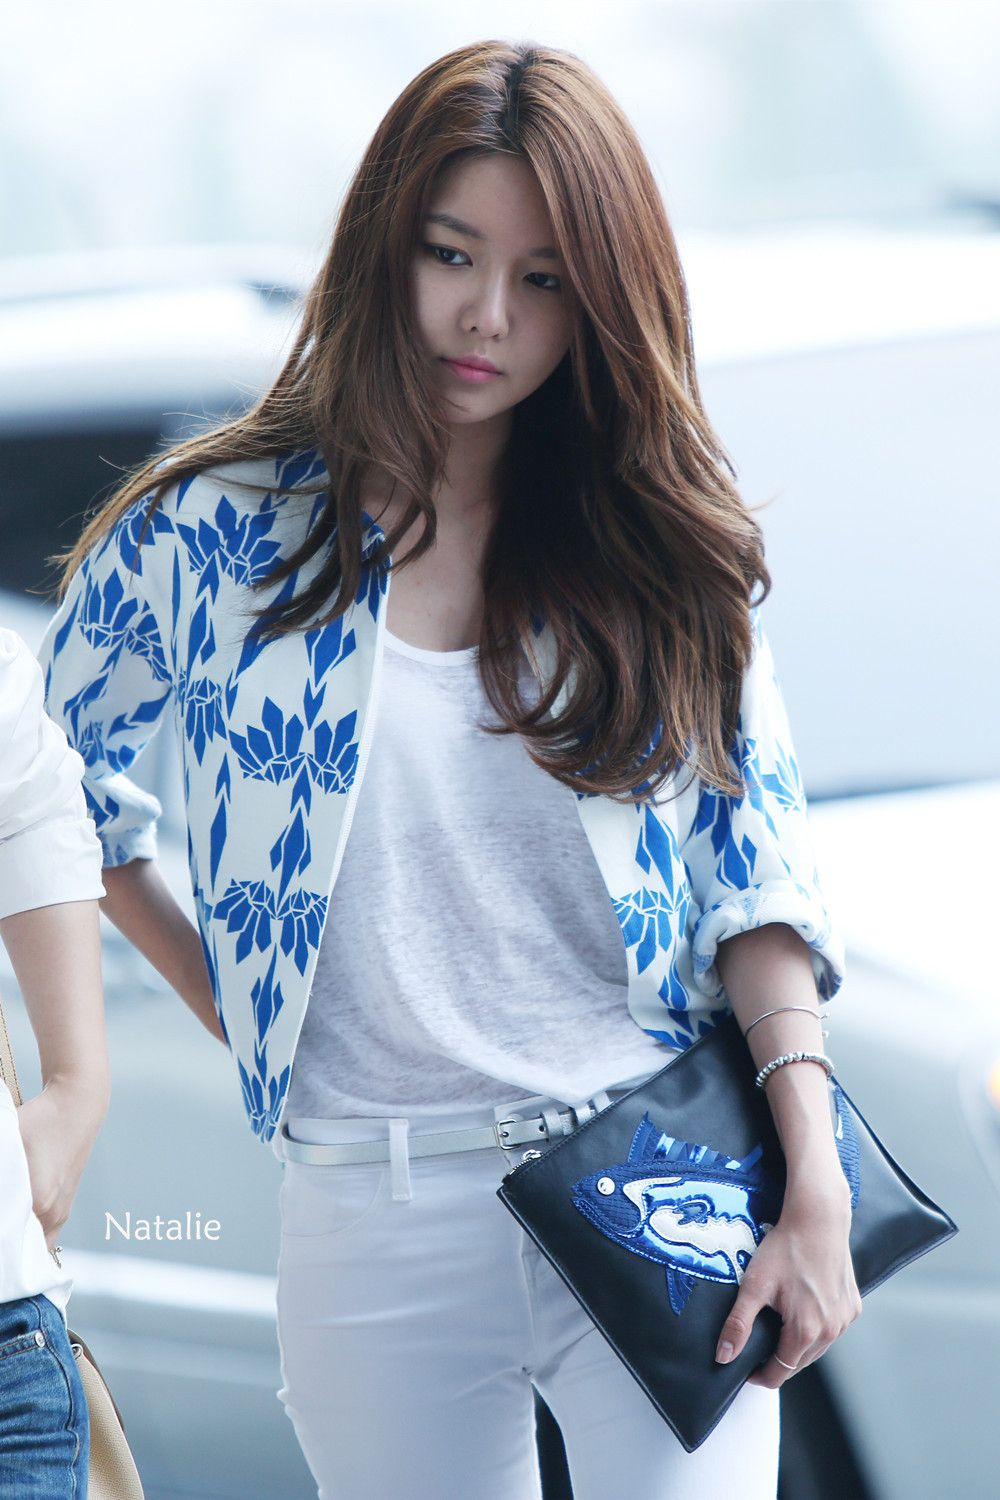 Sooyoung Airport Fashion T M V I Google Favorite Styles Pinterest Sooyoung Airport